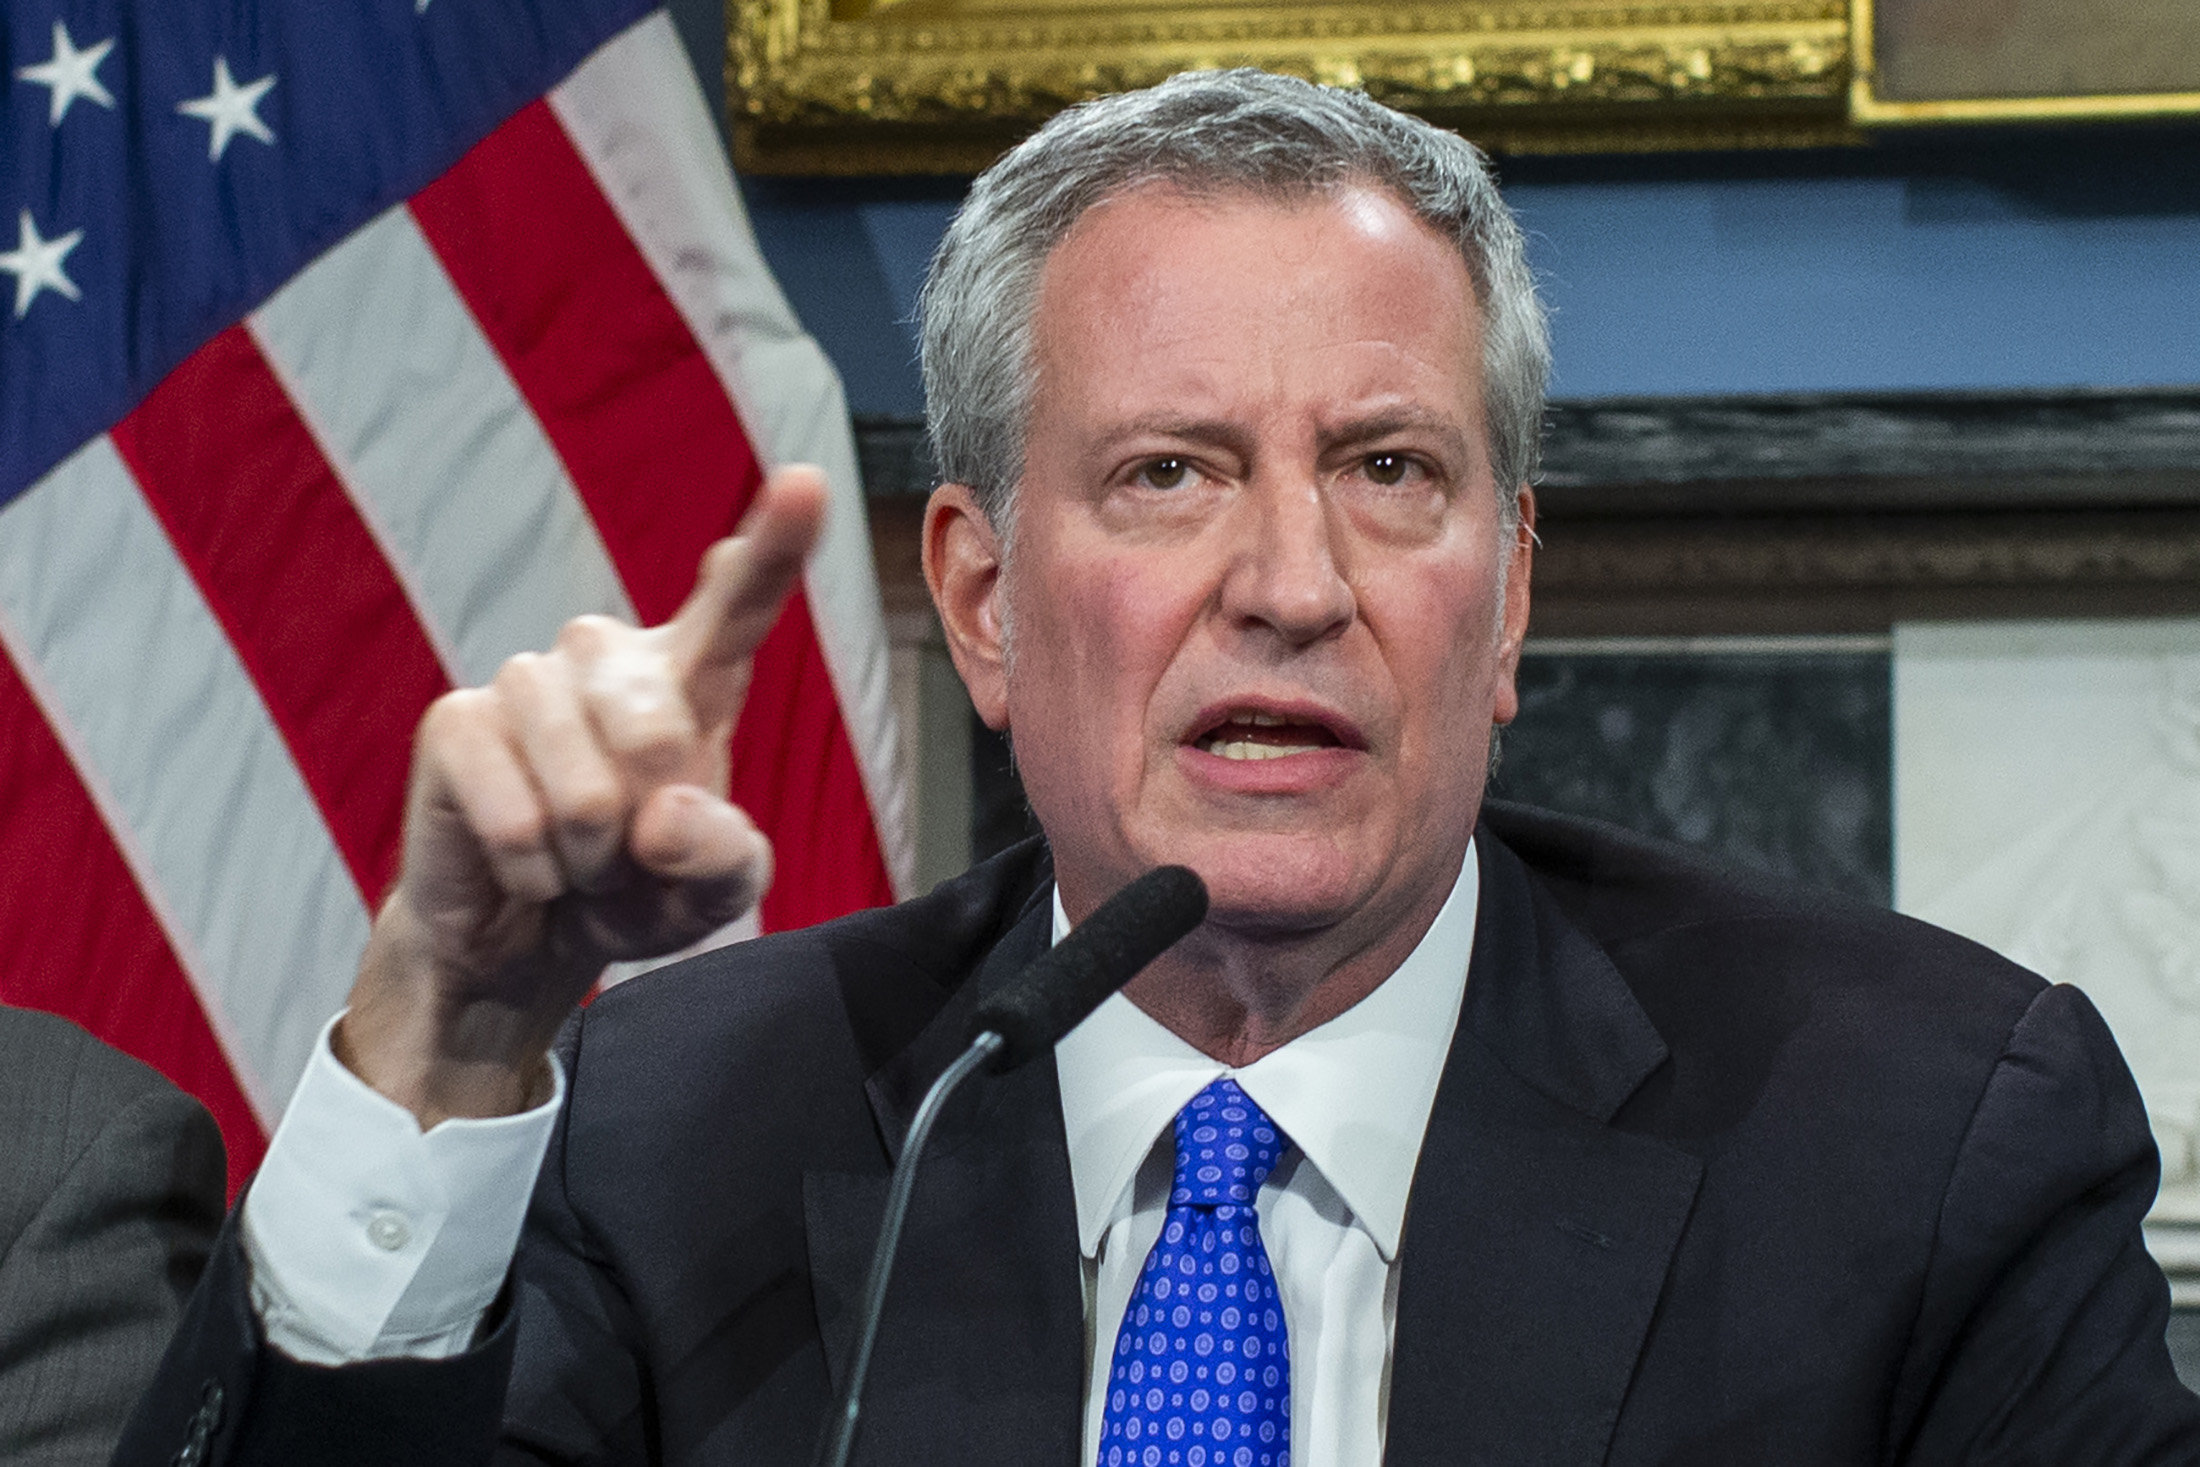 NYC Mayor Bill de Blasio threatens to permanently shut down churches, synagogues if they don't comply with gov't order